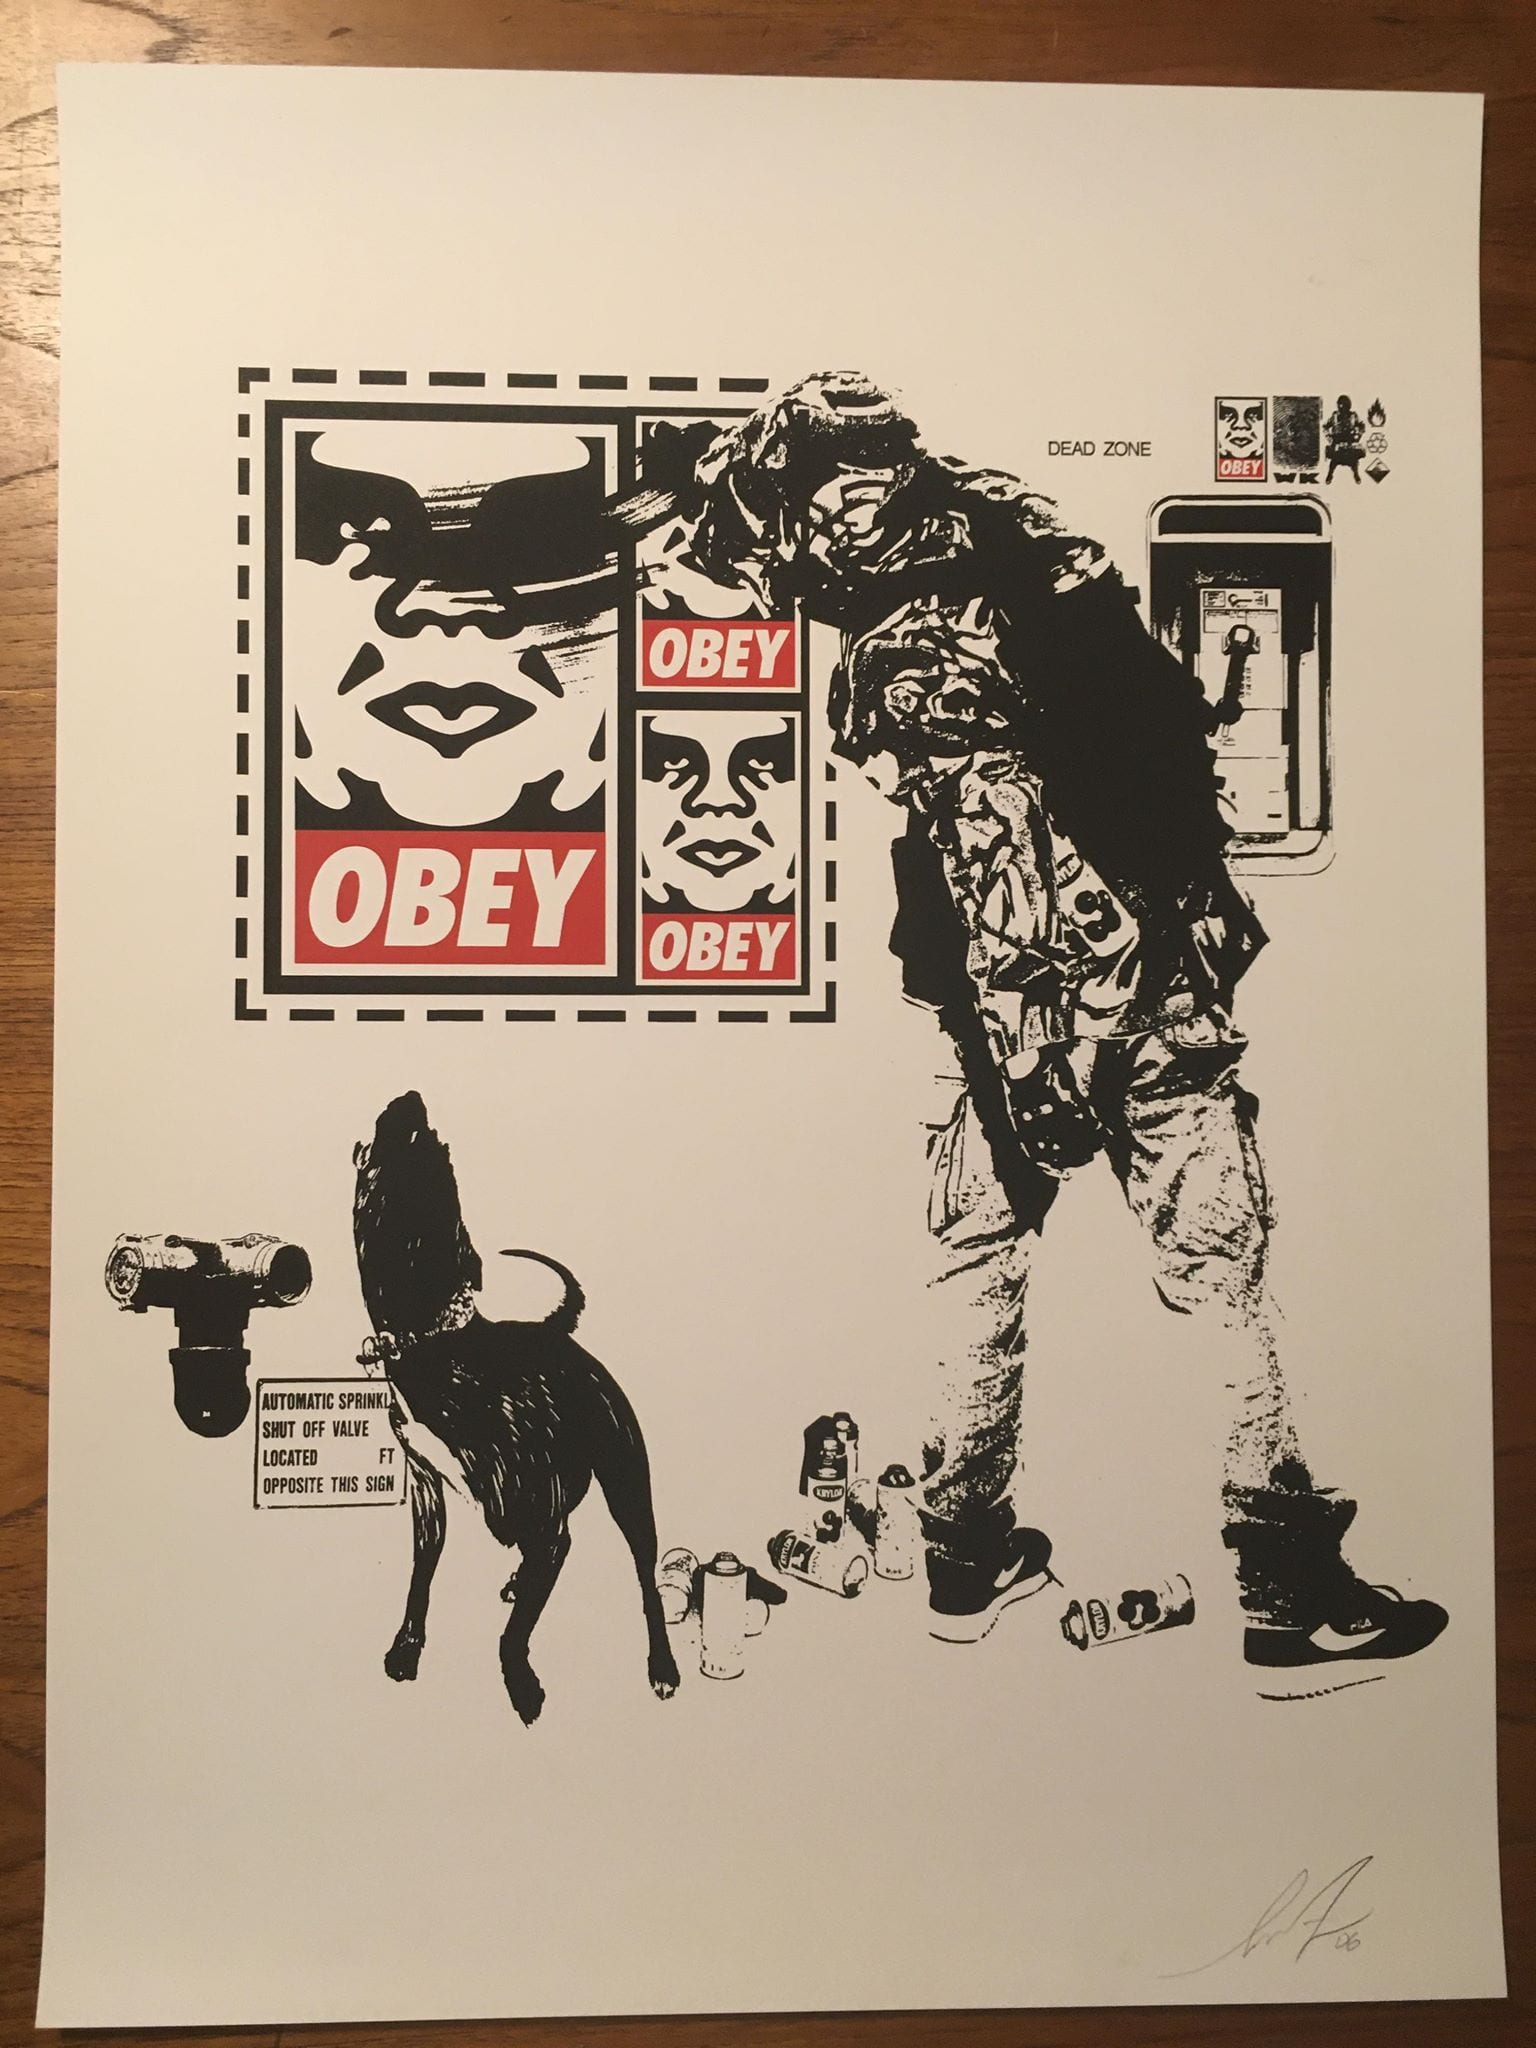 OBEY/WK FLYER Image 1